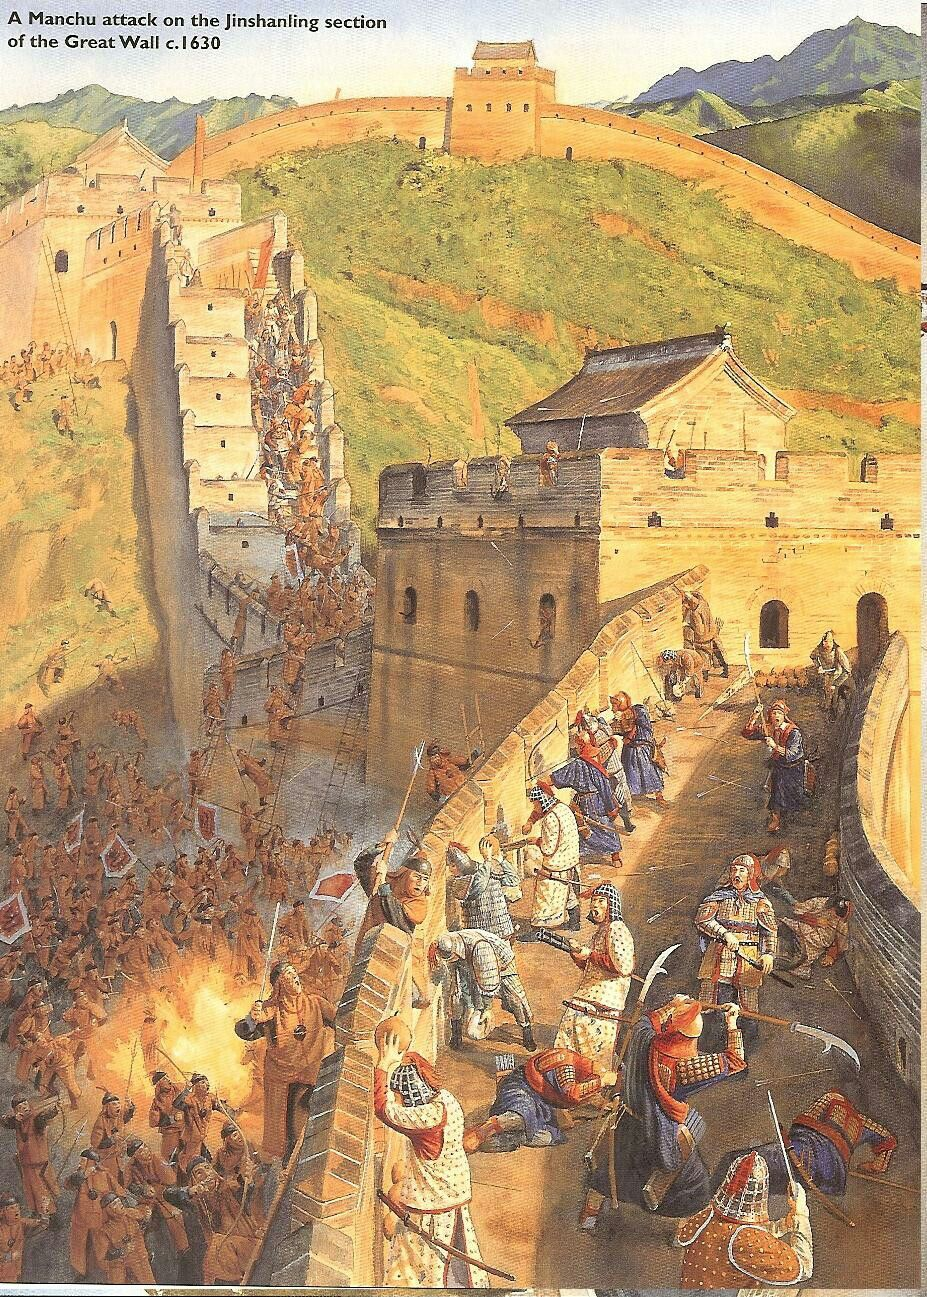 Ming army defend a fort in Great Wall | Ming - Manchu - Manchu ...